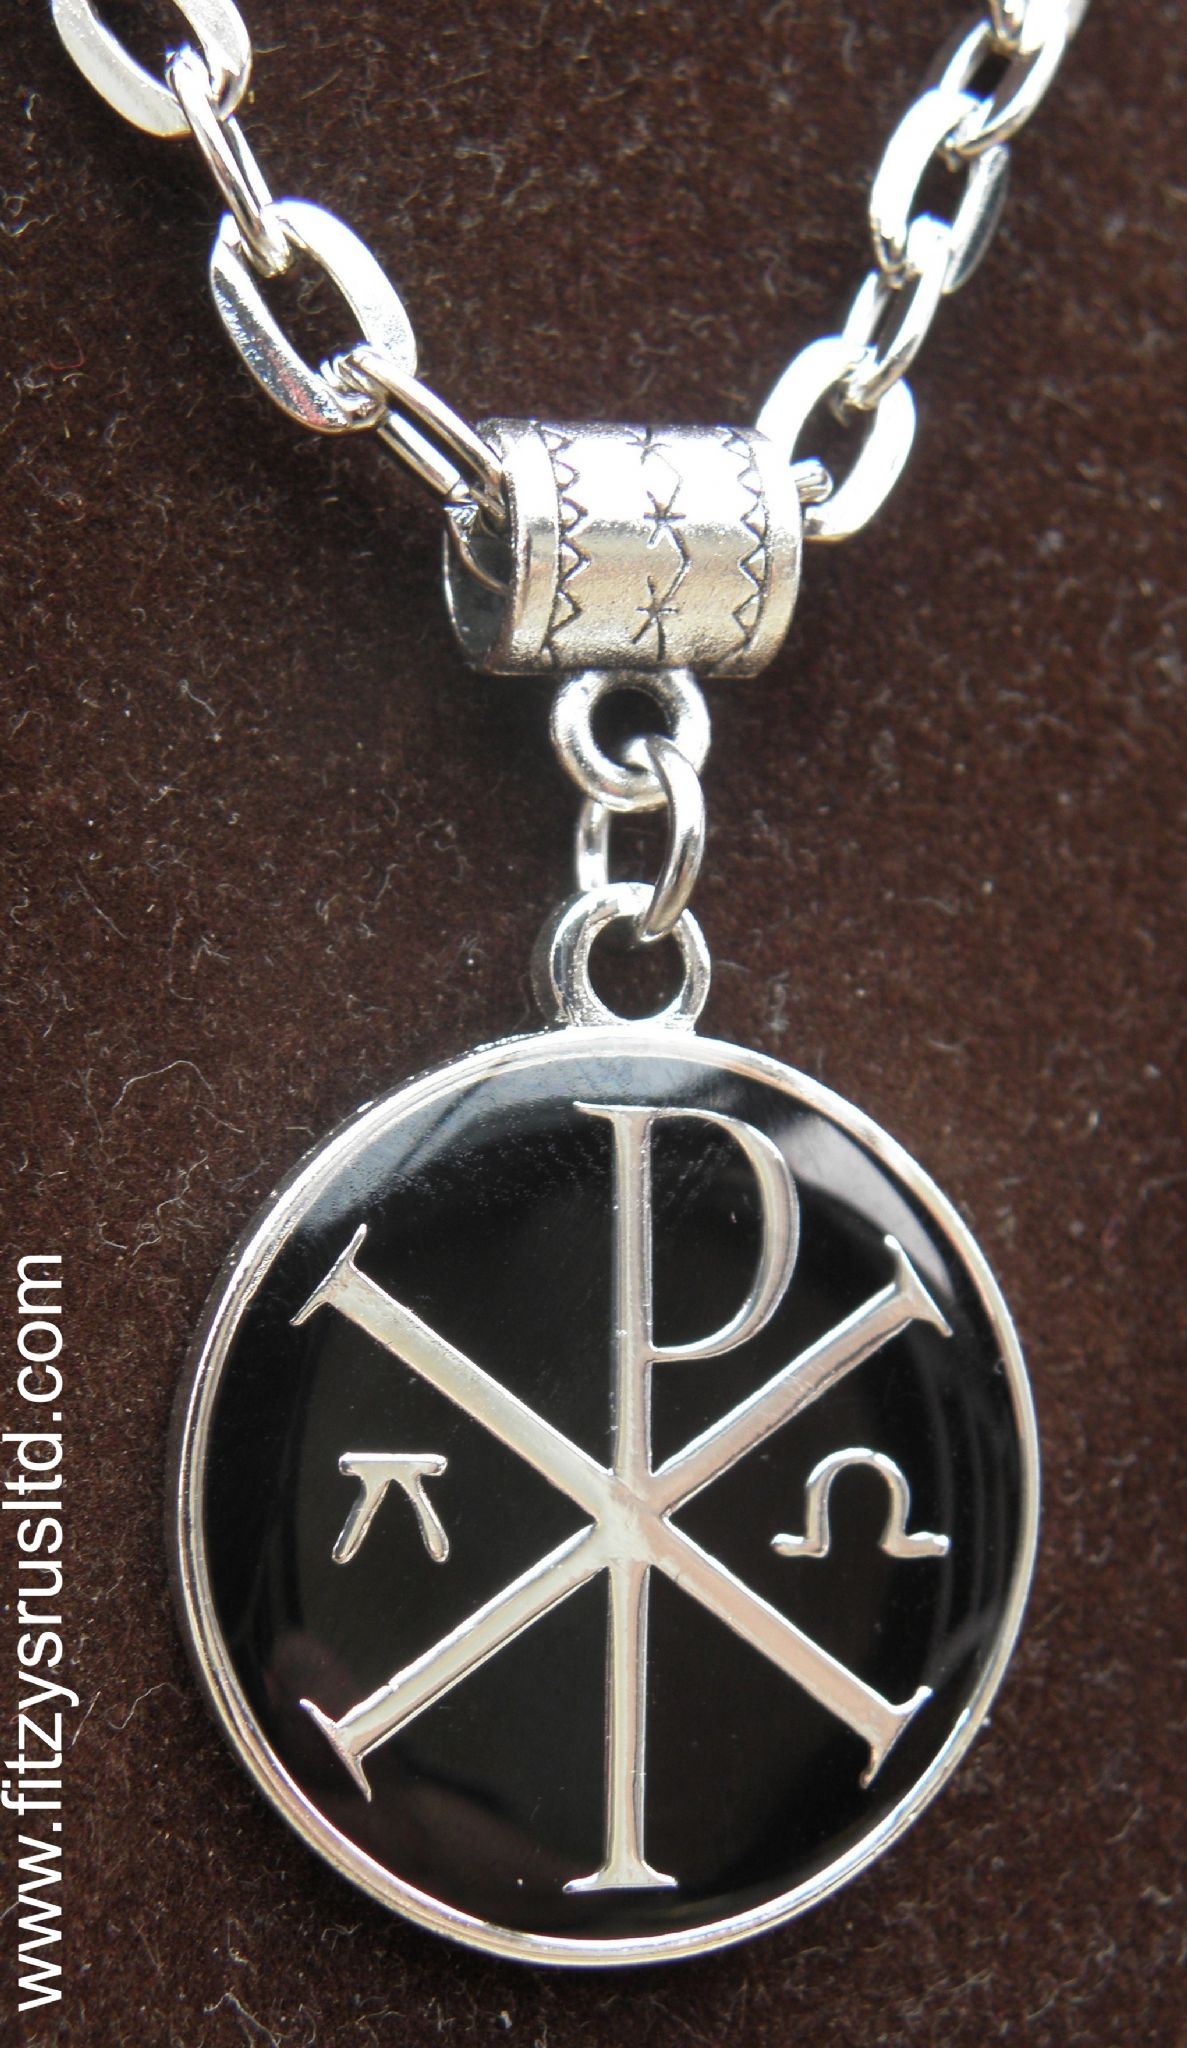 20 or 24 inch necklace chi rho alpha omega charm chi rho 20 or 24 inch necklace chi rho alpha omega charm chi rho mozeypictures Gallery